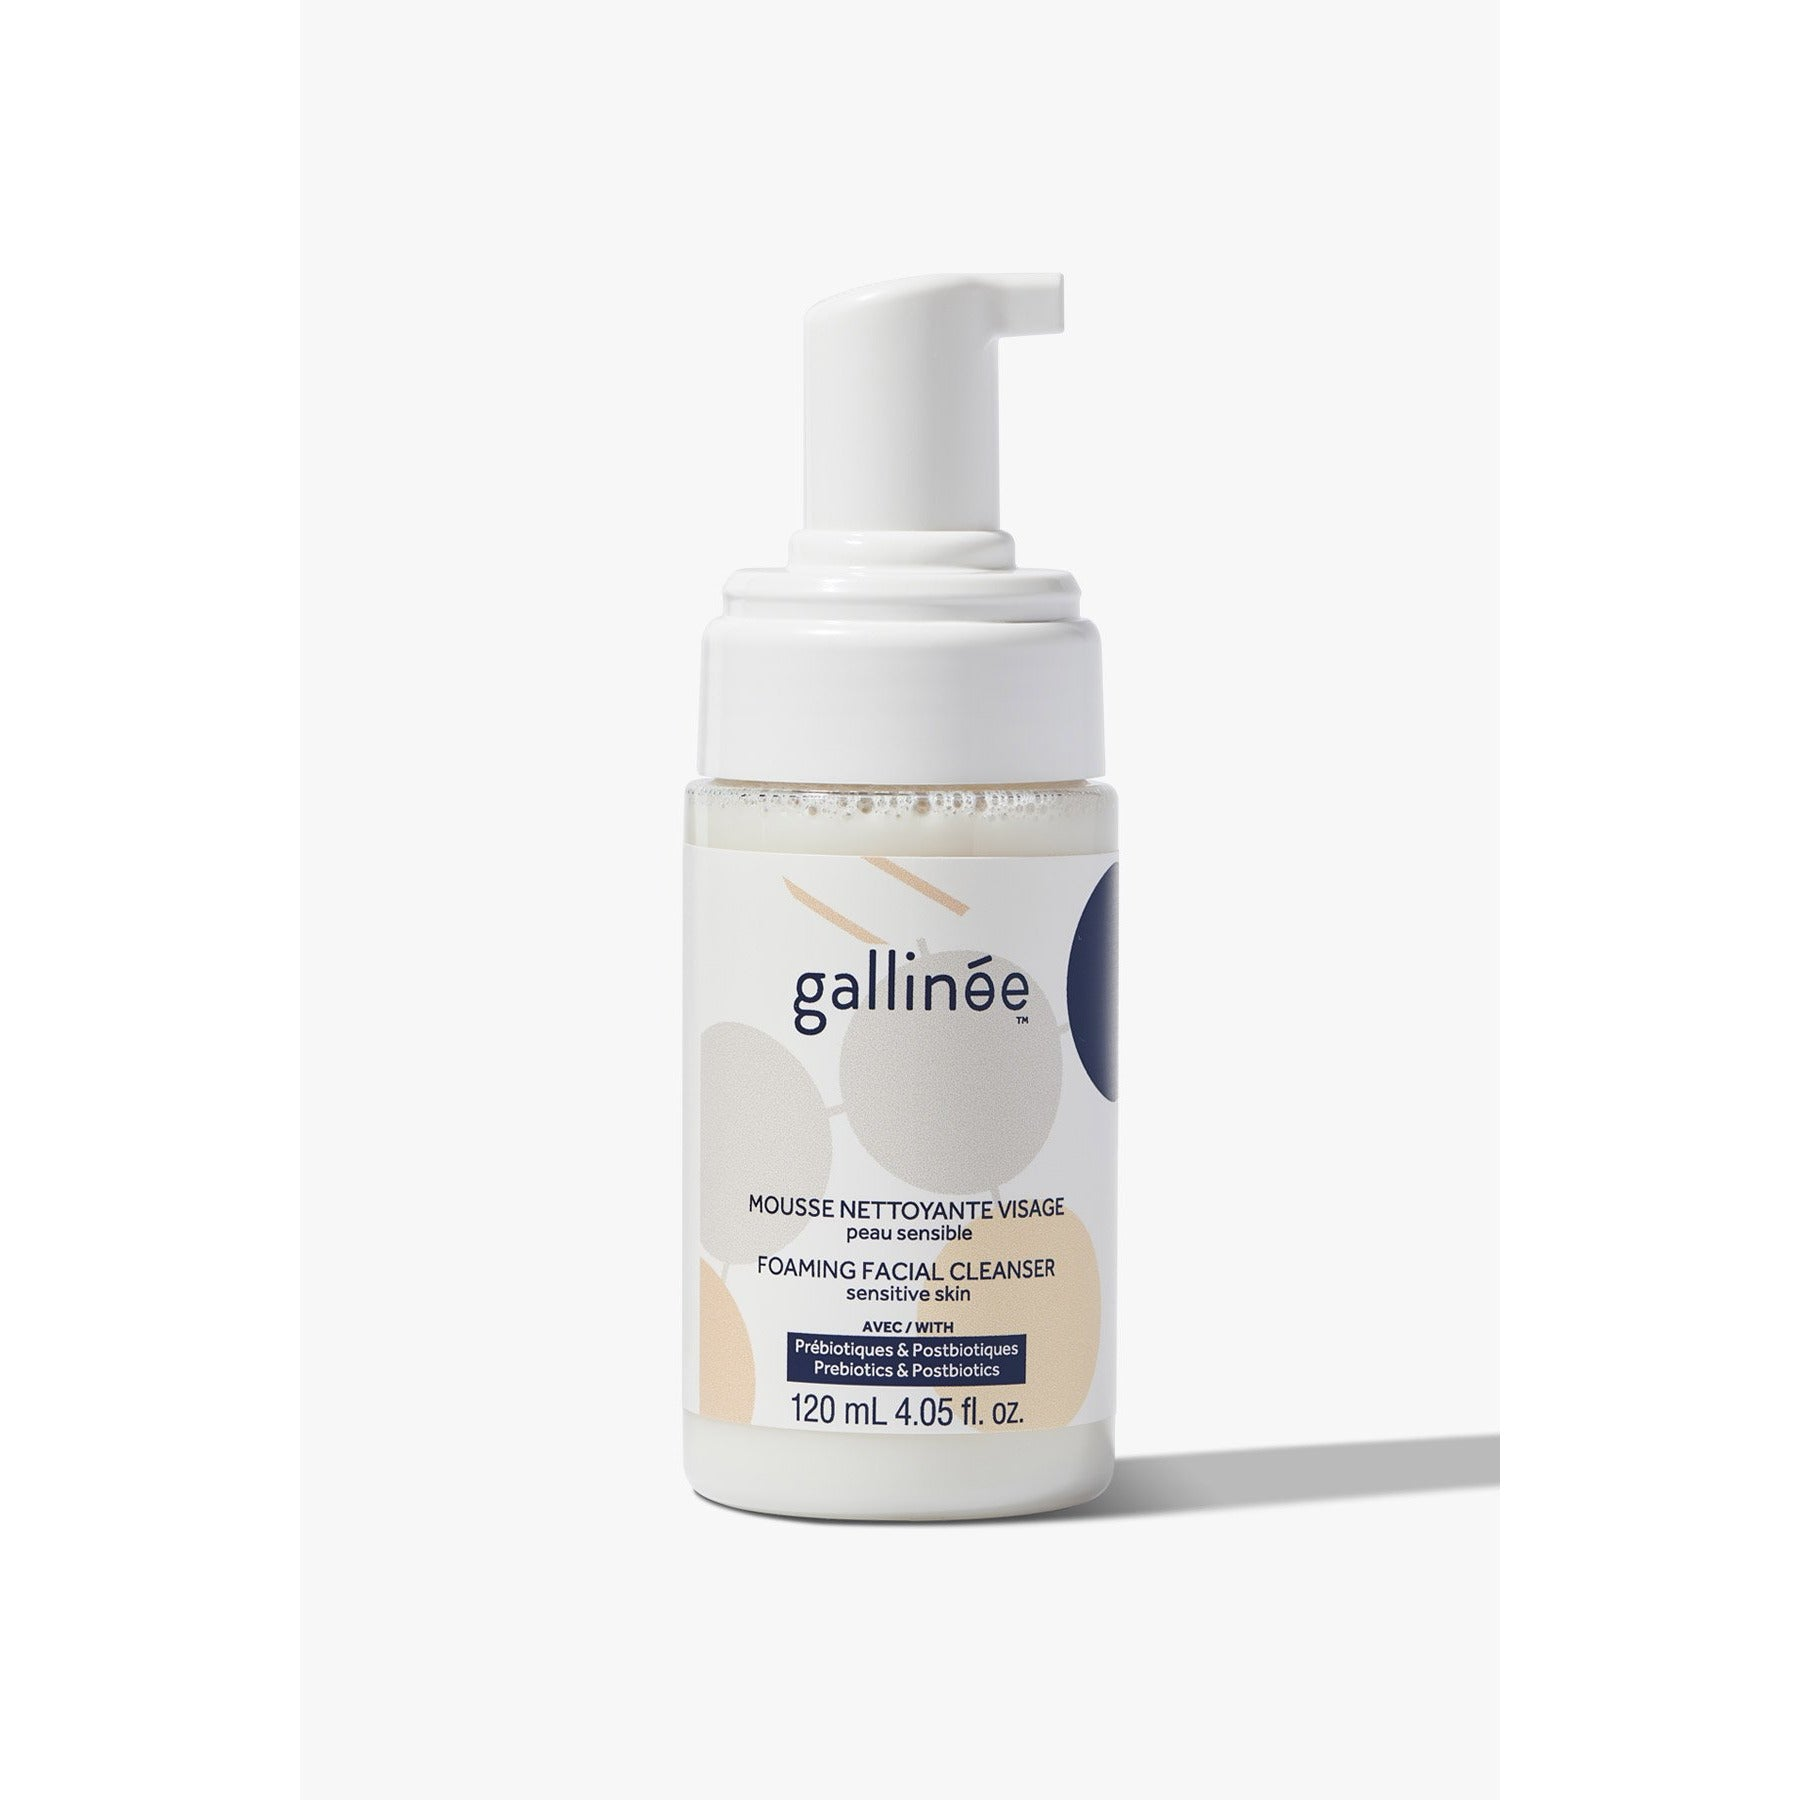 Prebiotic Foaming Facial Cleanser (120ml) - Beautykind